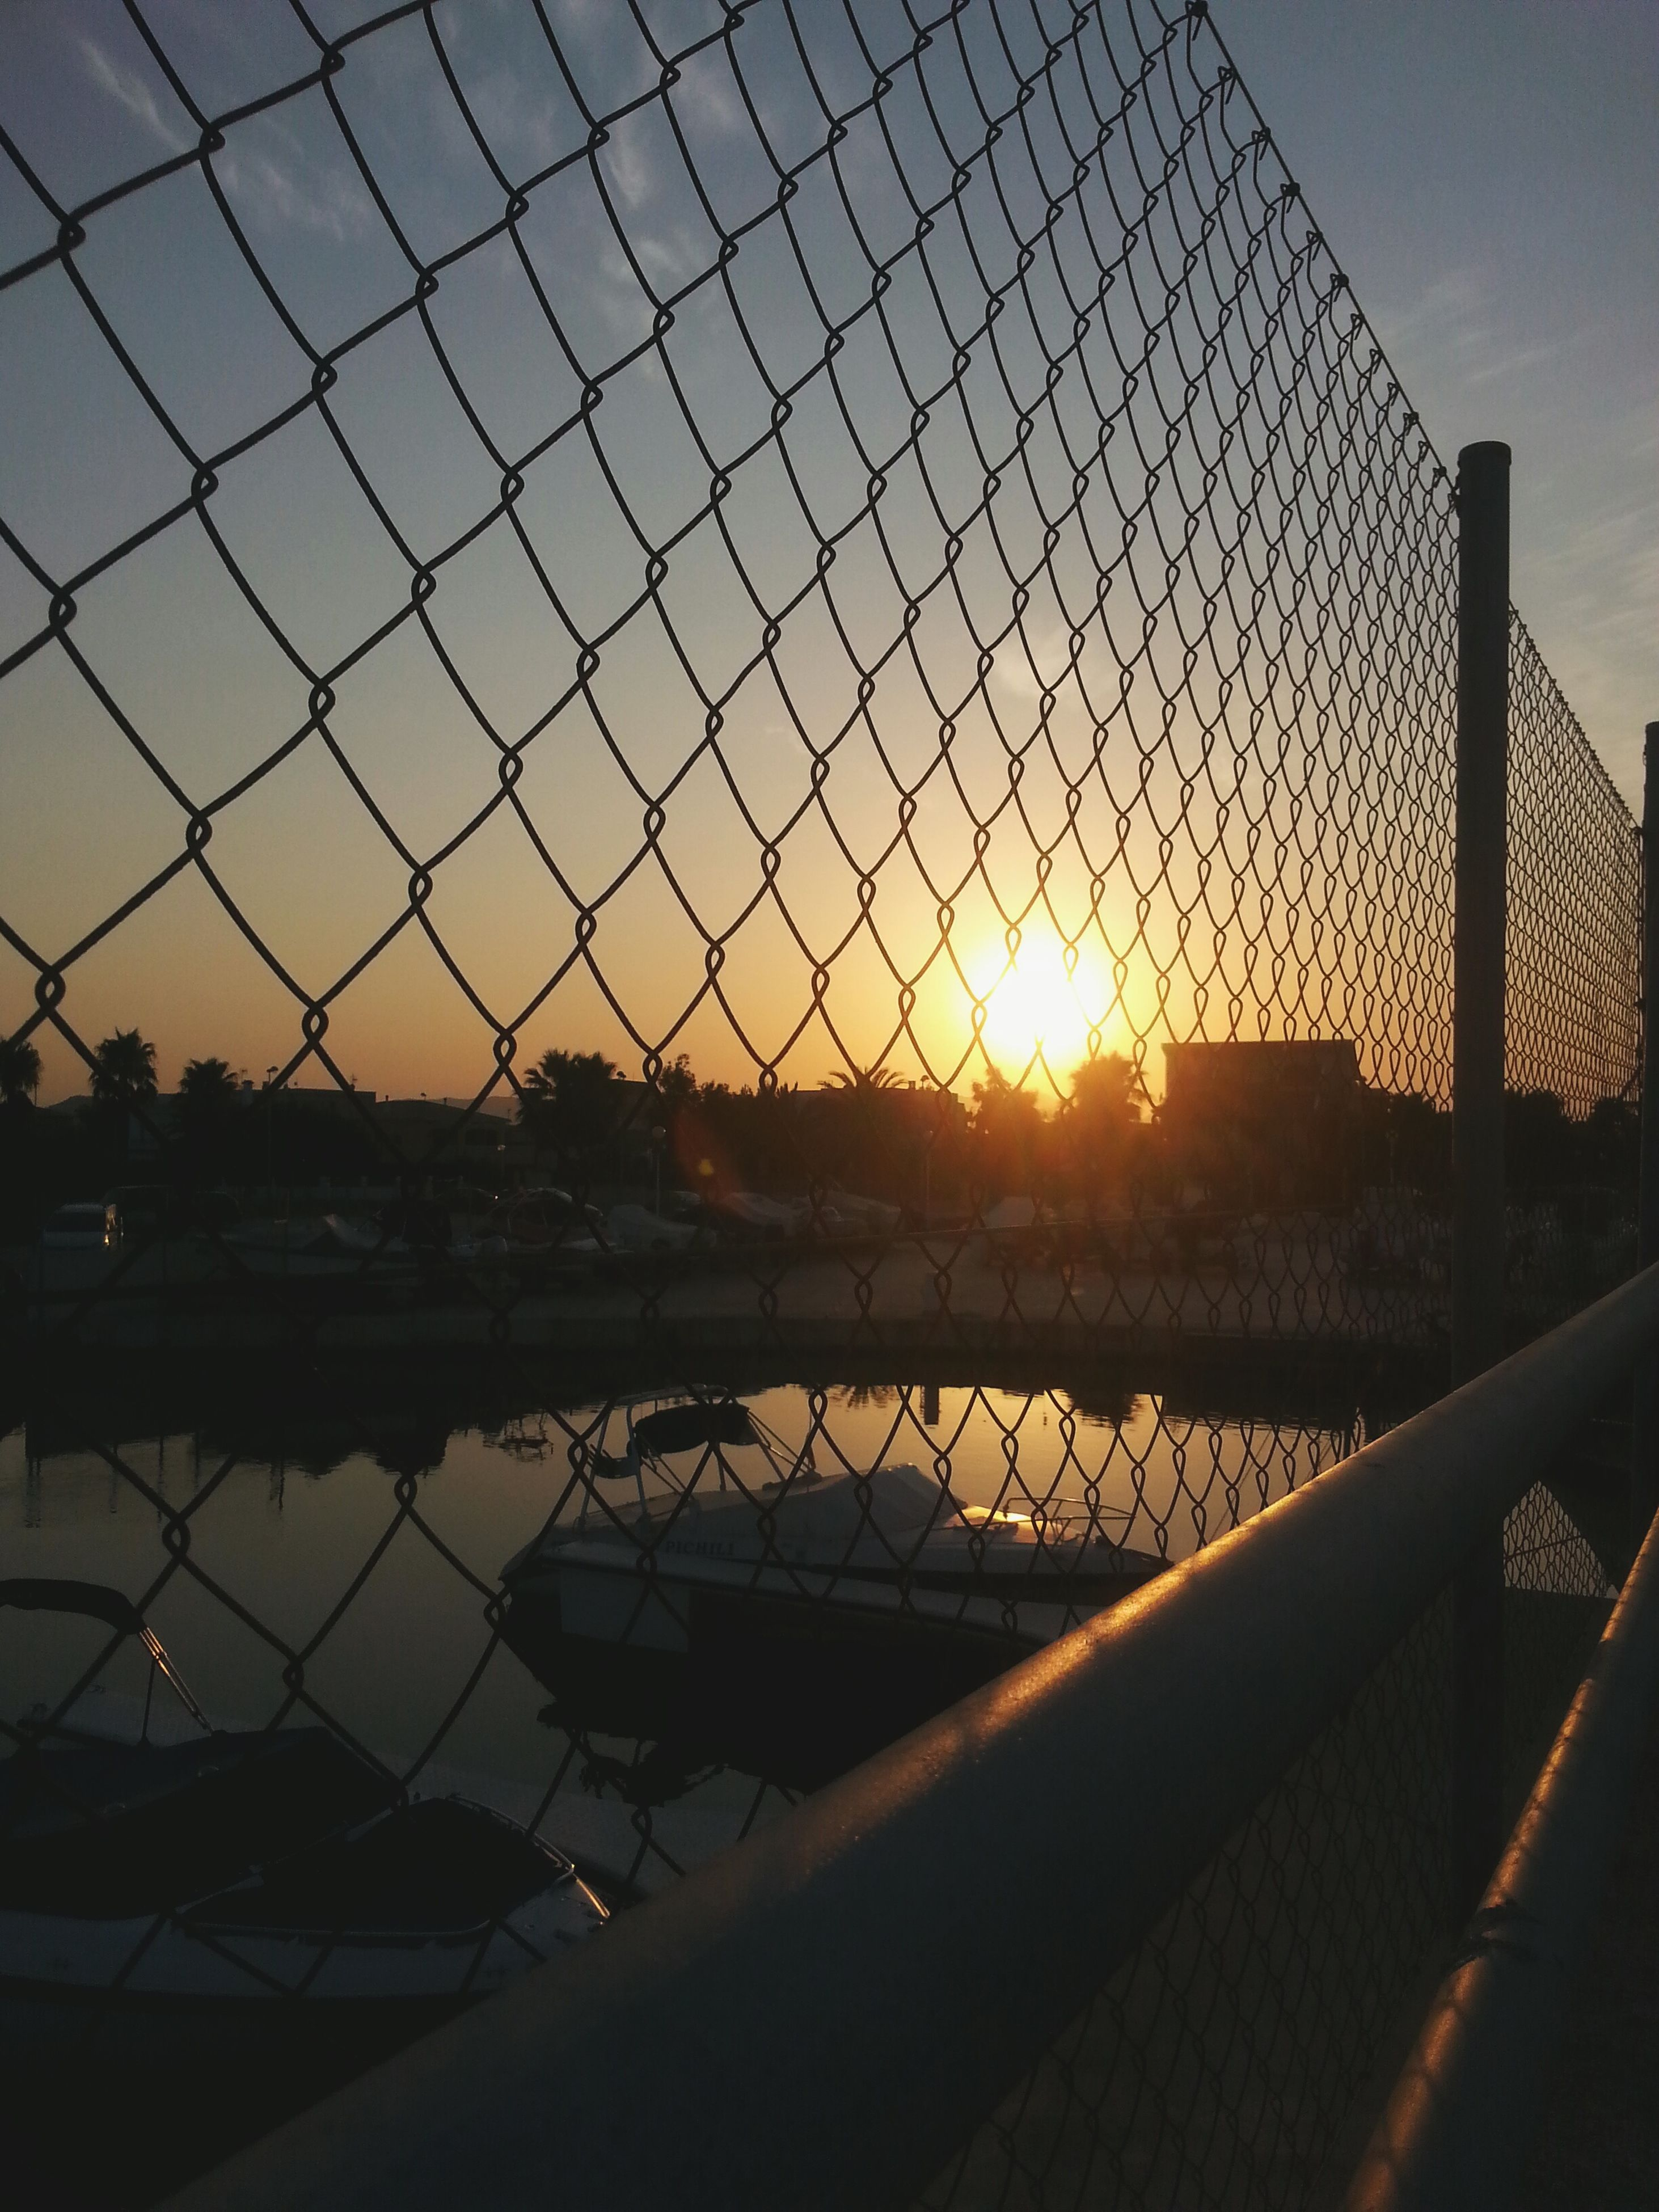 sunset, sun, orange color, silhouette, sky, water, scenics, tranquility, sunlight, tranquil scene, reflection, beauty in nature, fence, nature, idyllic, chainlink fence, sea, lake, no people, sunbeam